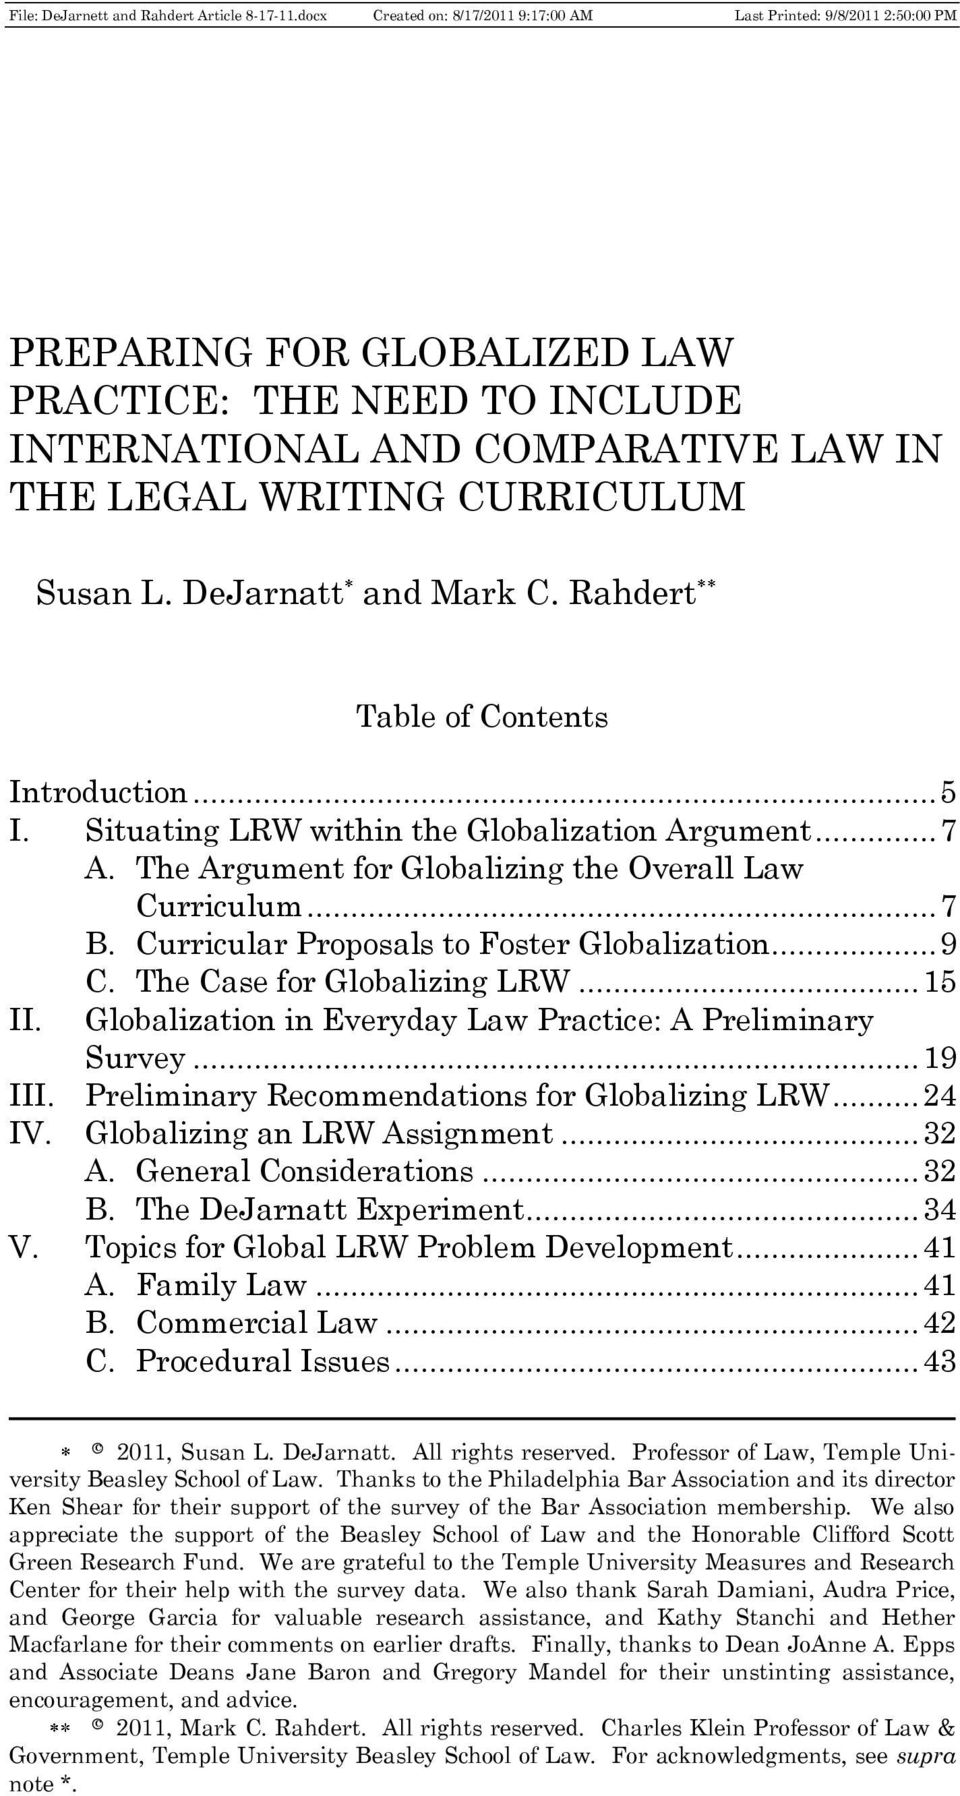 The Case for Globalizing LRW... 15 II. Globalization in Everyday Law Practice: A Preliminary Survey... 19 III. Preliminary Recommendations for Globalizing LRW... 24 IV. Globalizing an LRW Assignment.